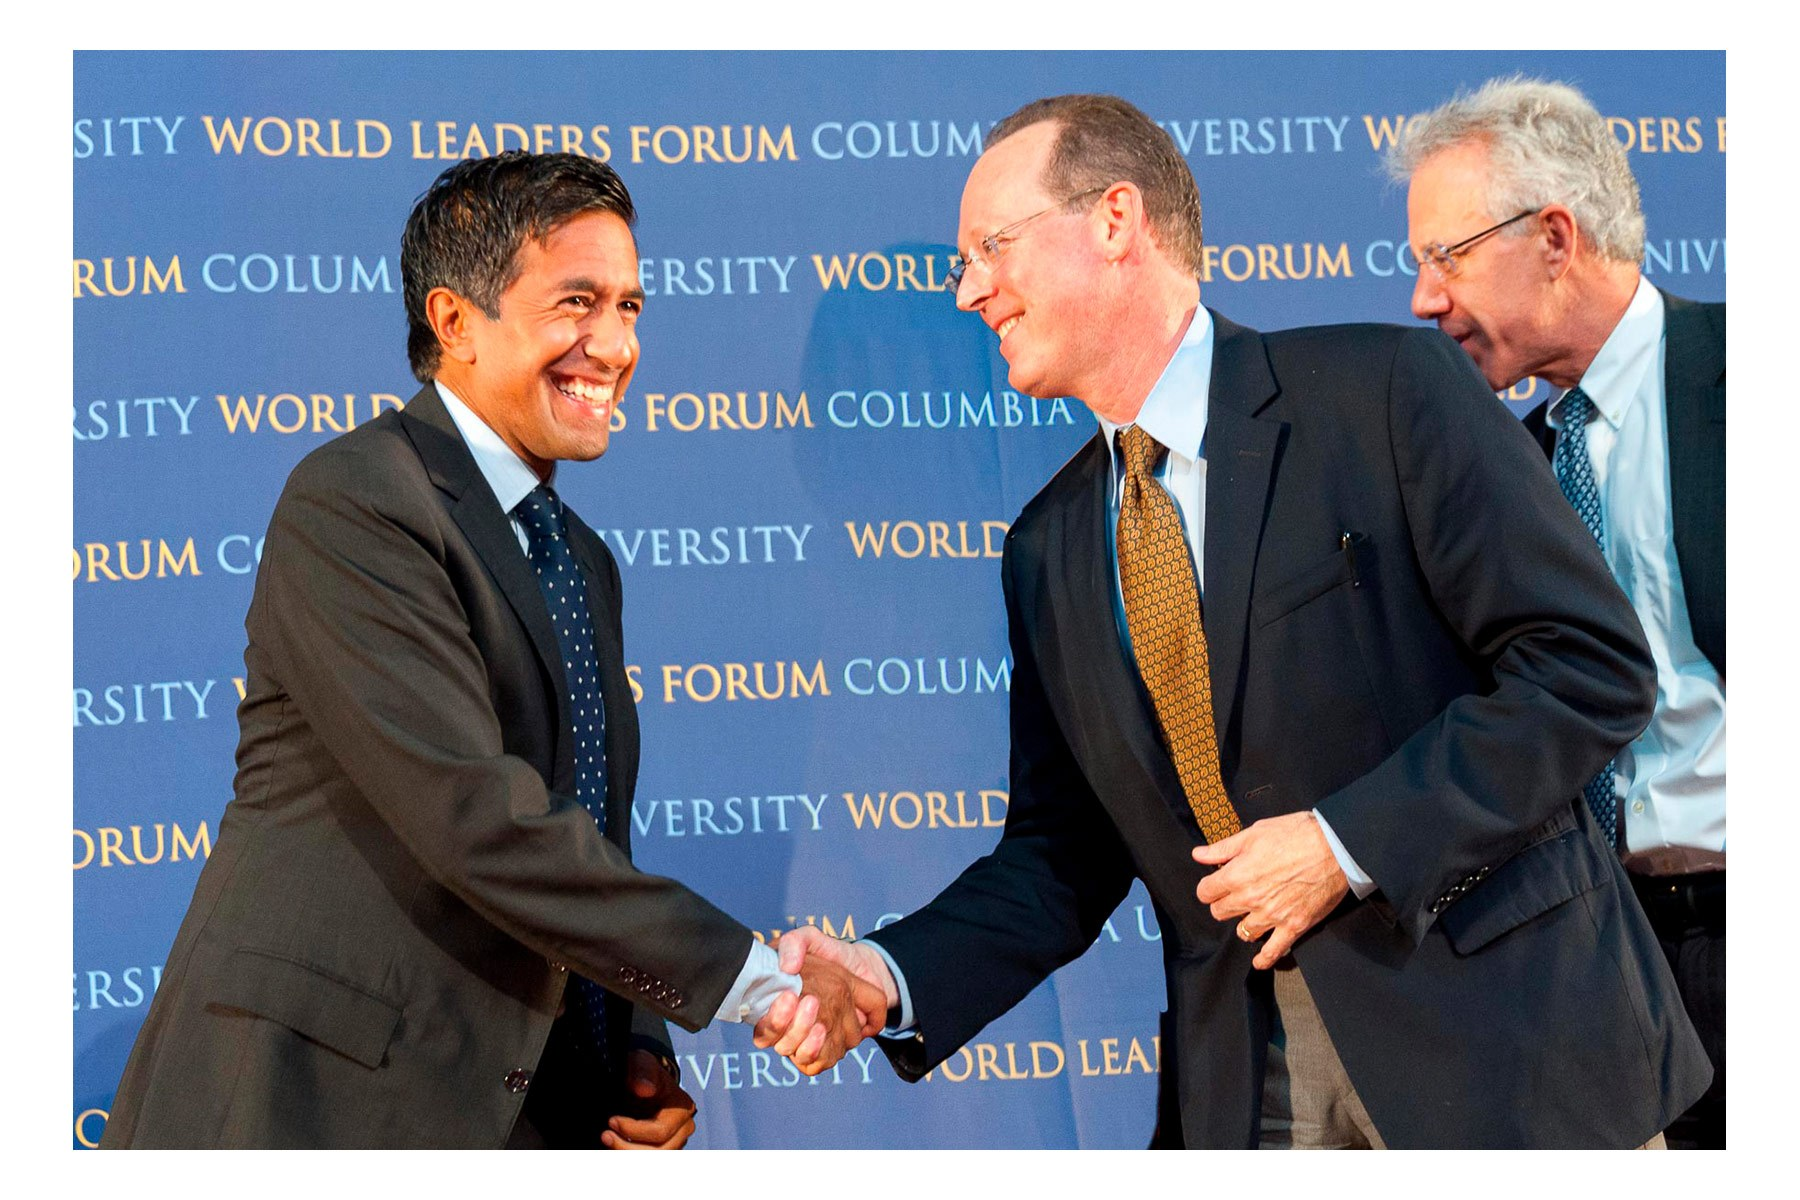 World Leaders Forum -  Delivering Hope:  Preventing and Treating Noncommunicable Diseases in Developing Countries;  Lance Armstrong, Dr. Wafaa El-Sadr, Dr. Paul Farmer, Dr. Sanjay Gupta, and Dr. Lawrence Shulman, Columbia University, NY, 09-19-2011